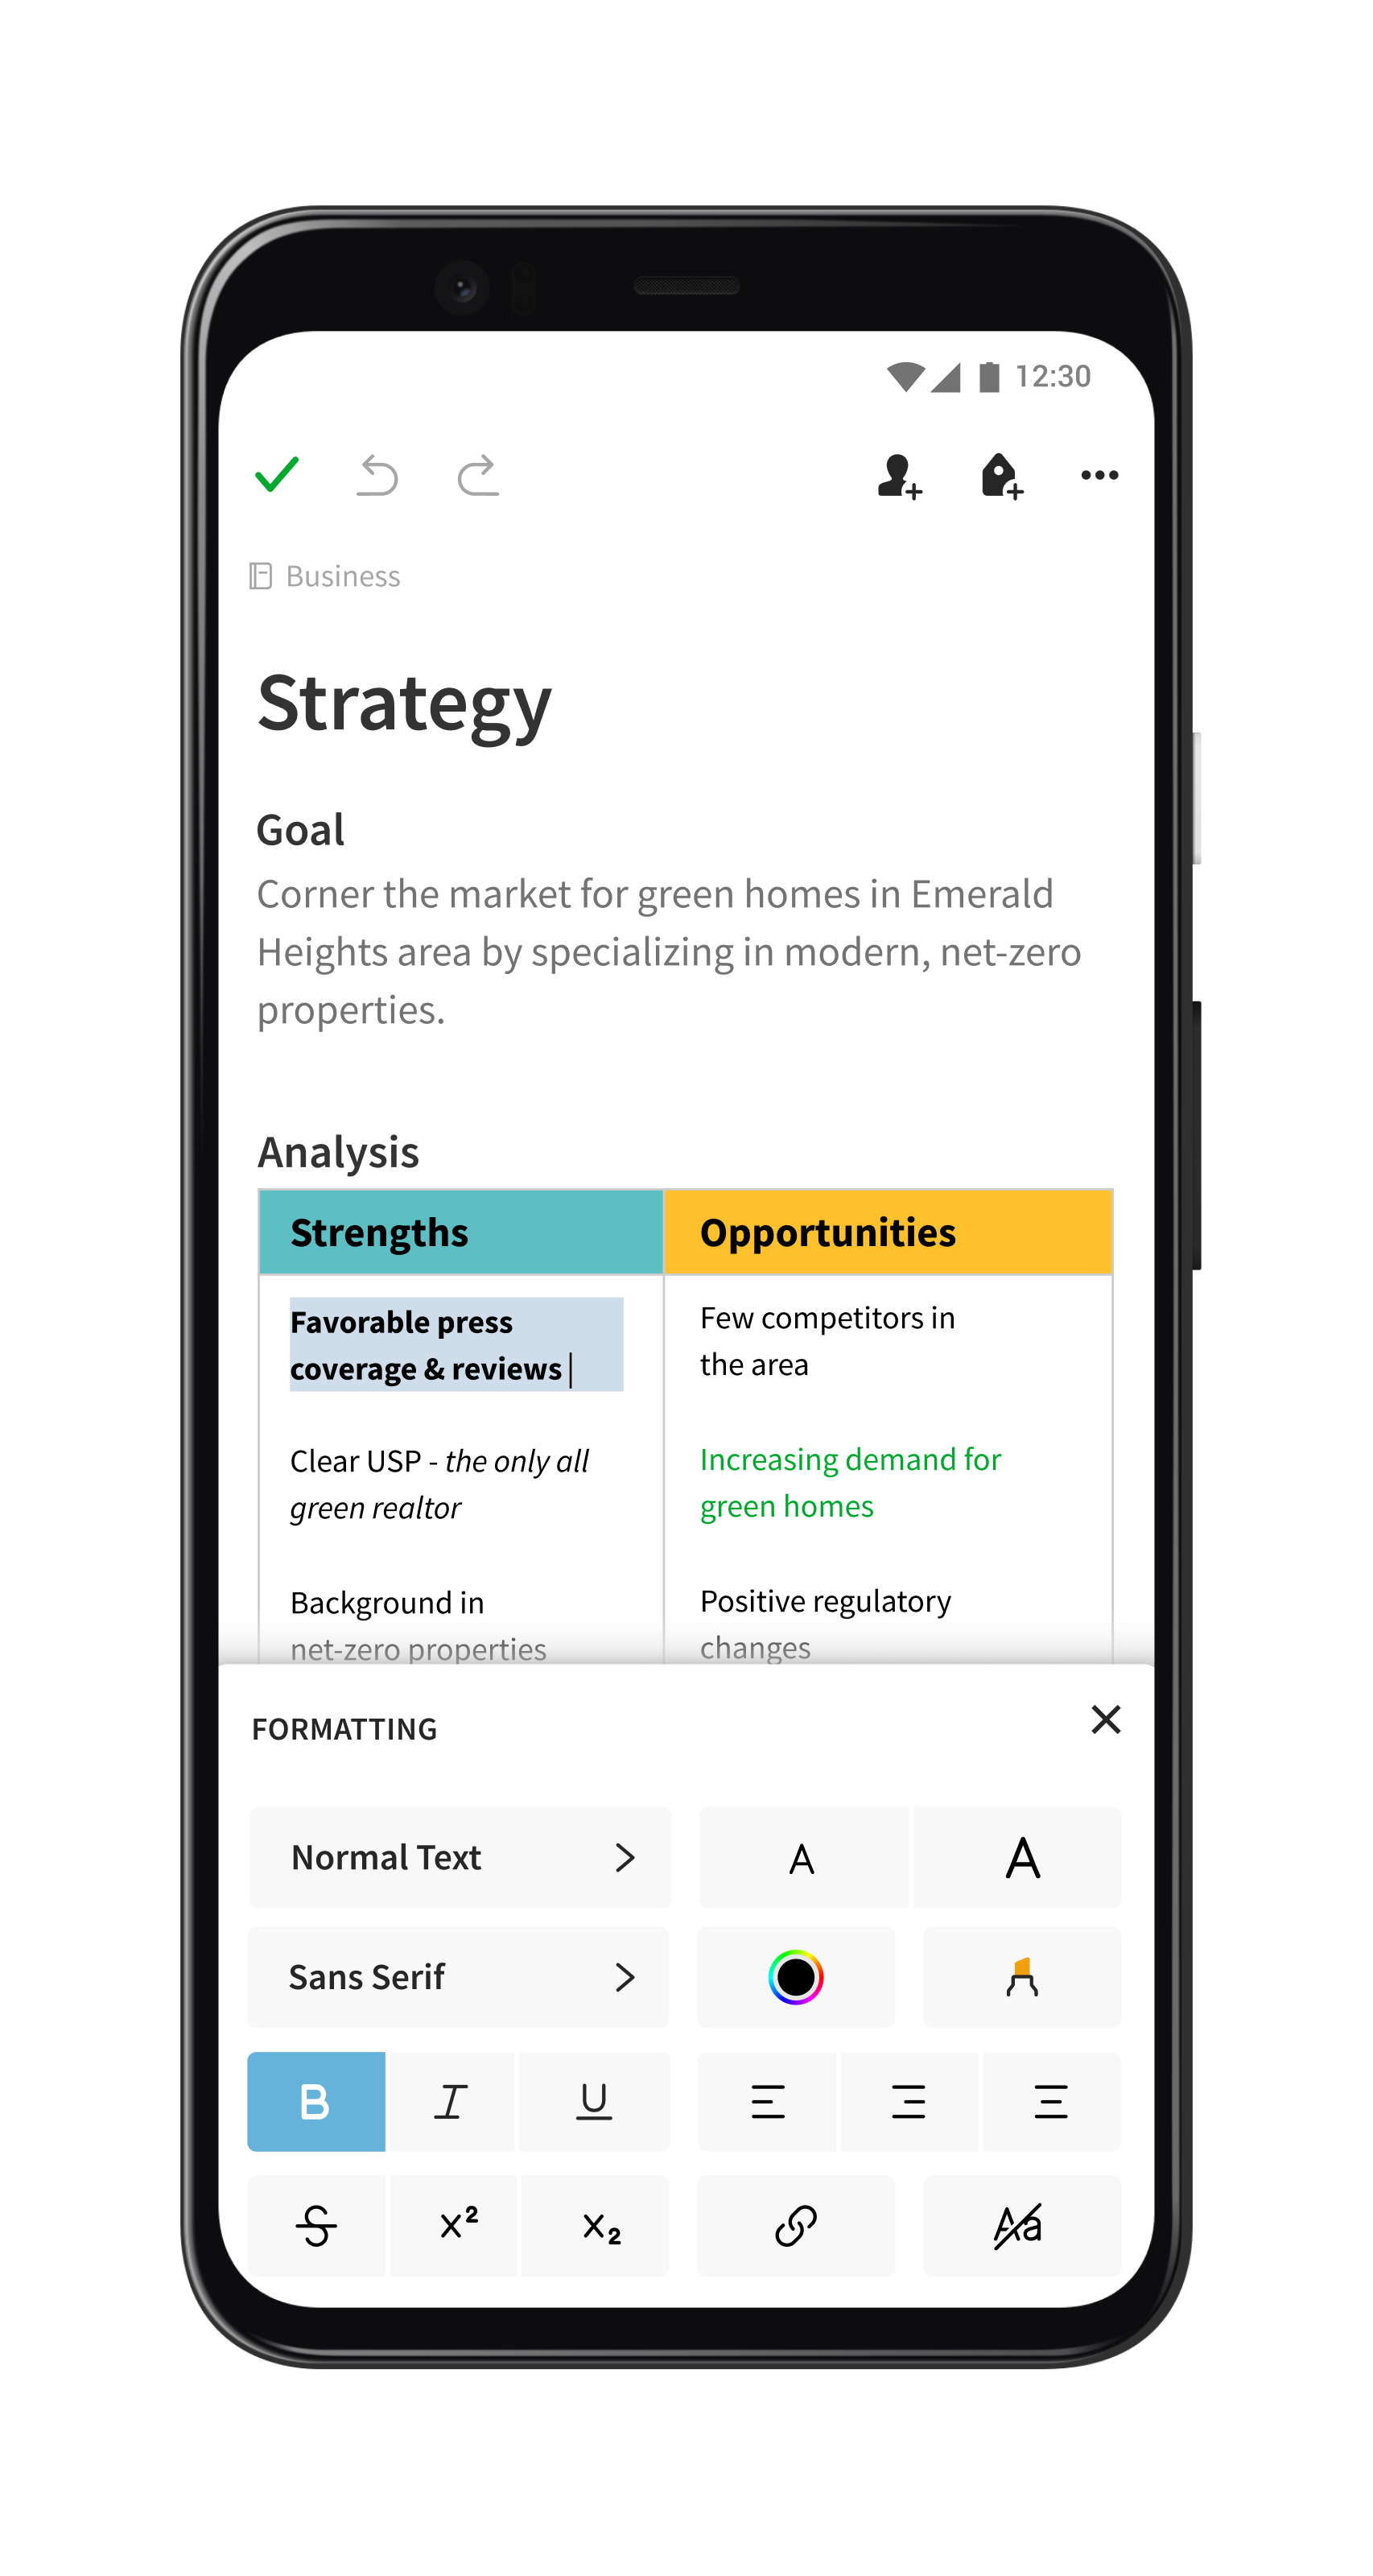 The new note editor in Evernote for Android